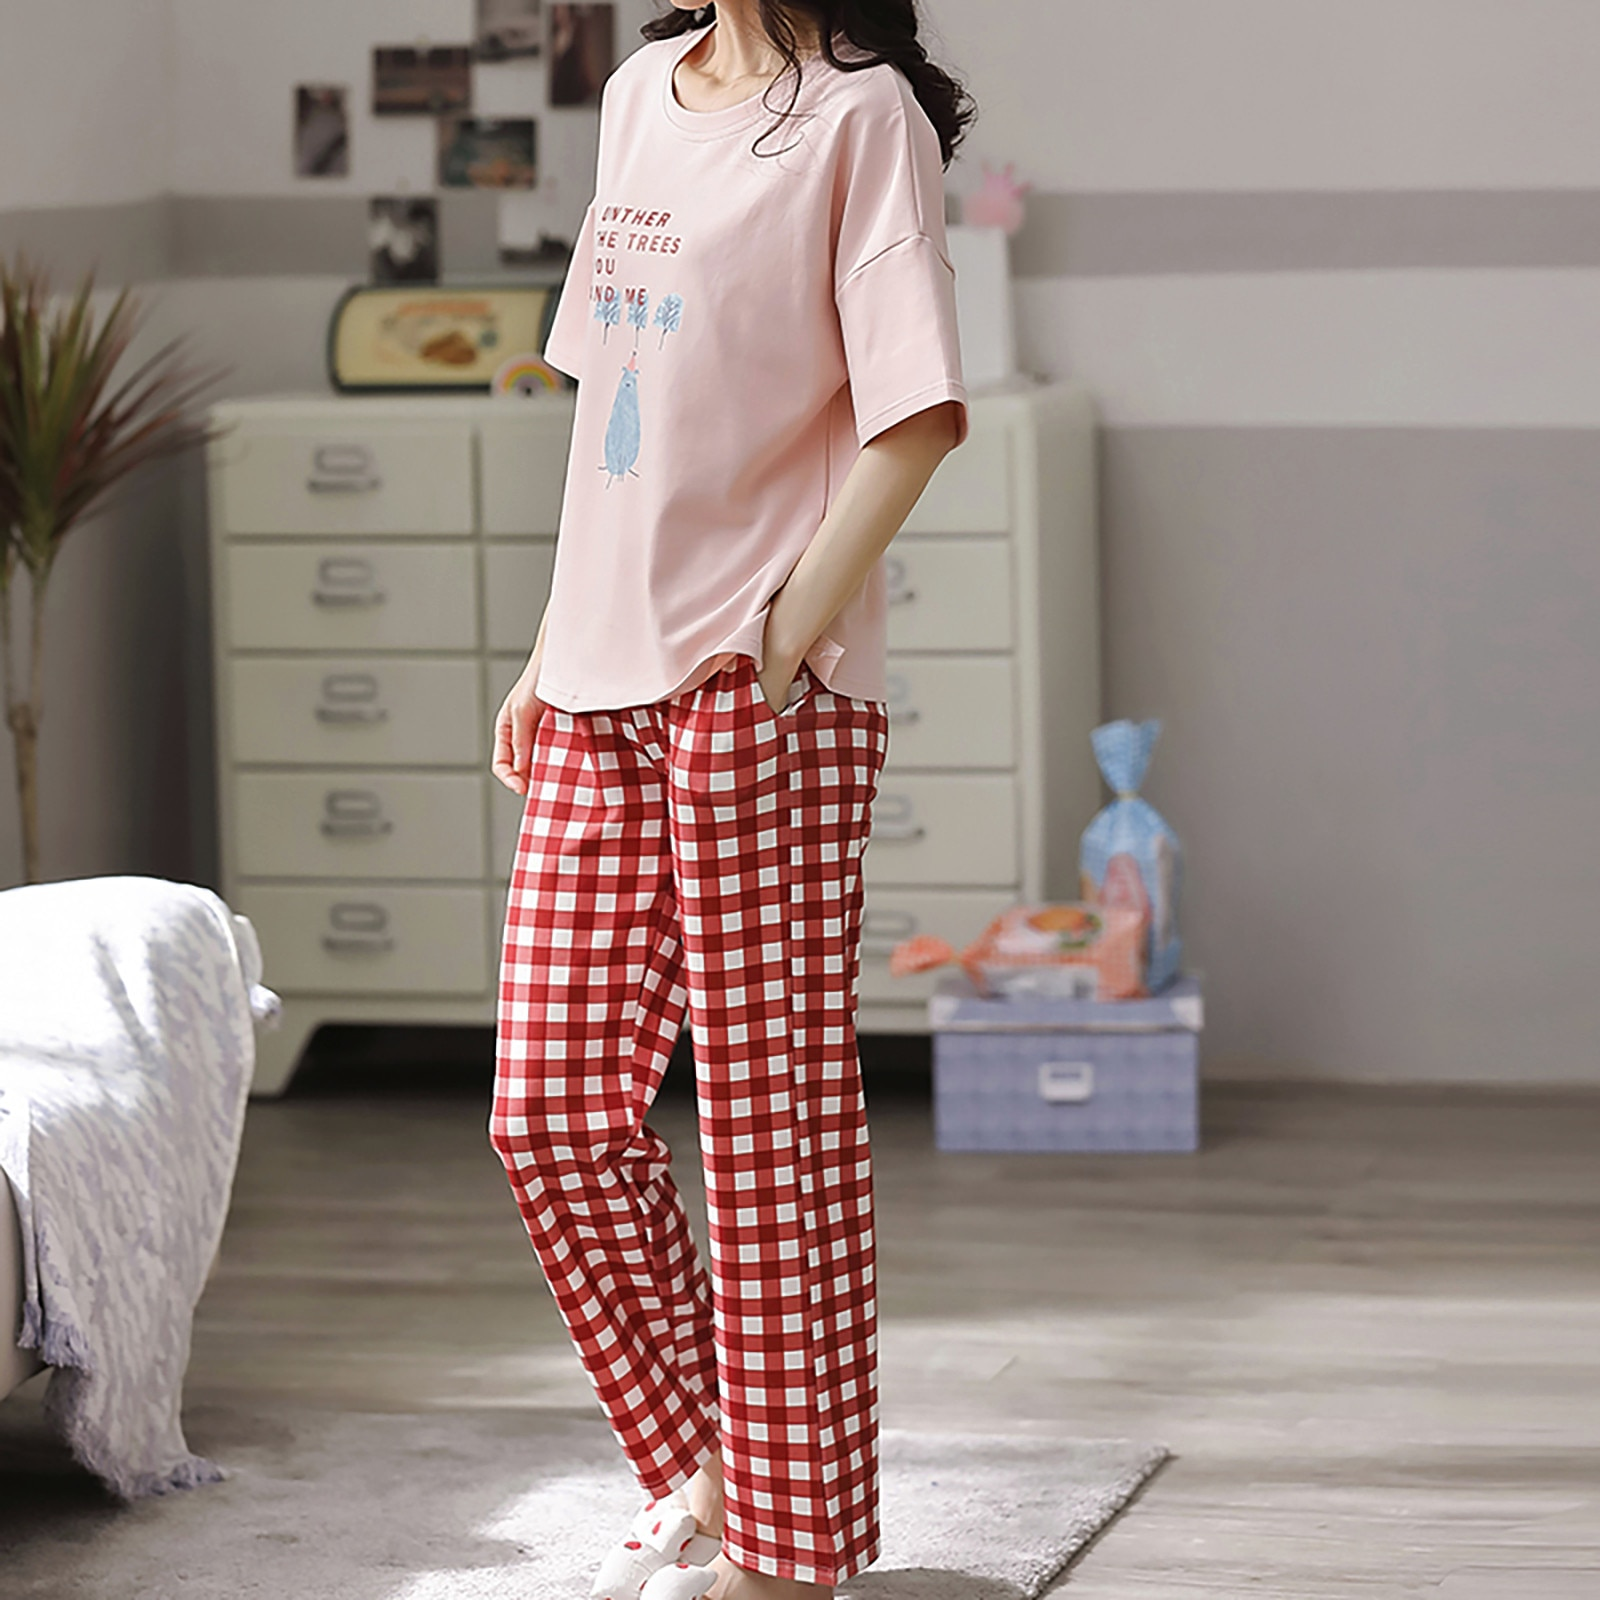 pajama sets Women Fashion plus size homewear Sets Lounge Wear Pocket Home Sleep Set Tops+Pants 2021